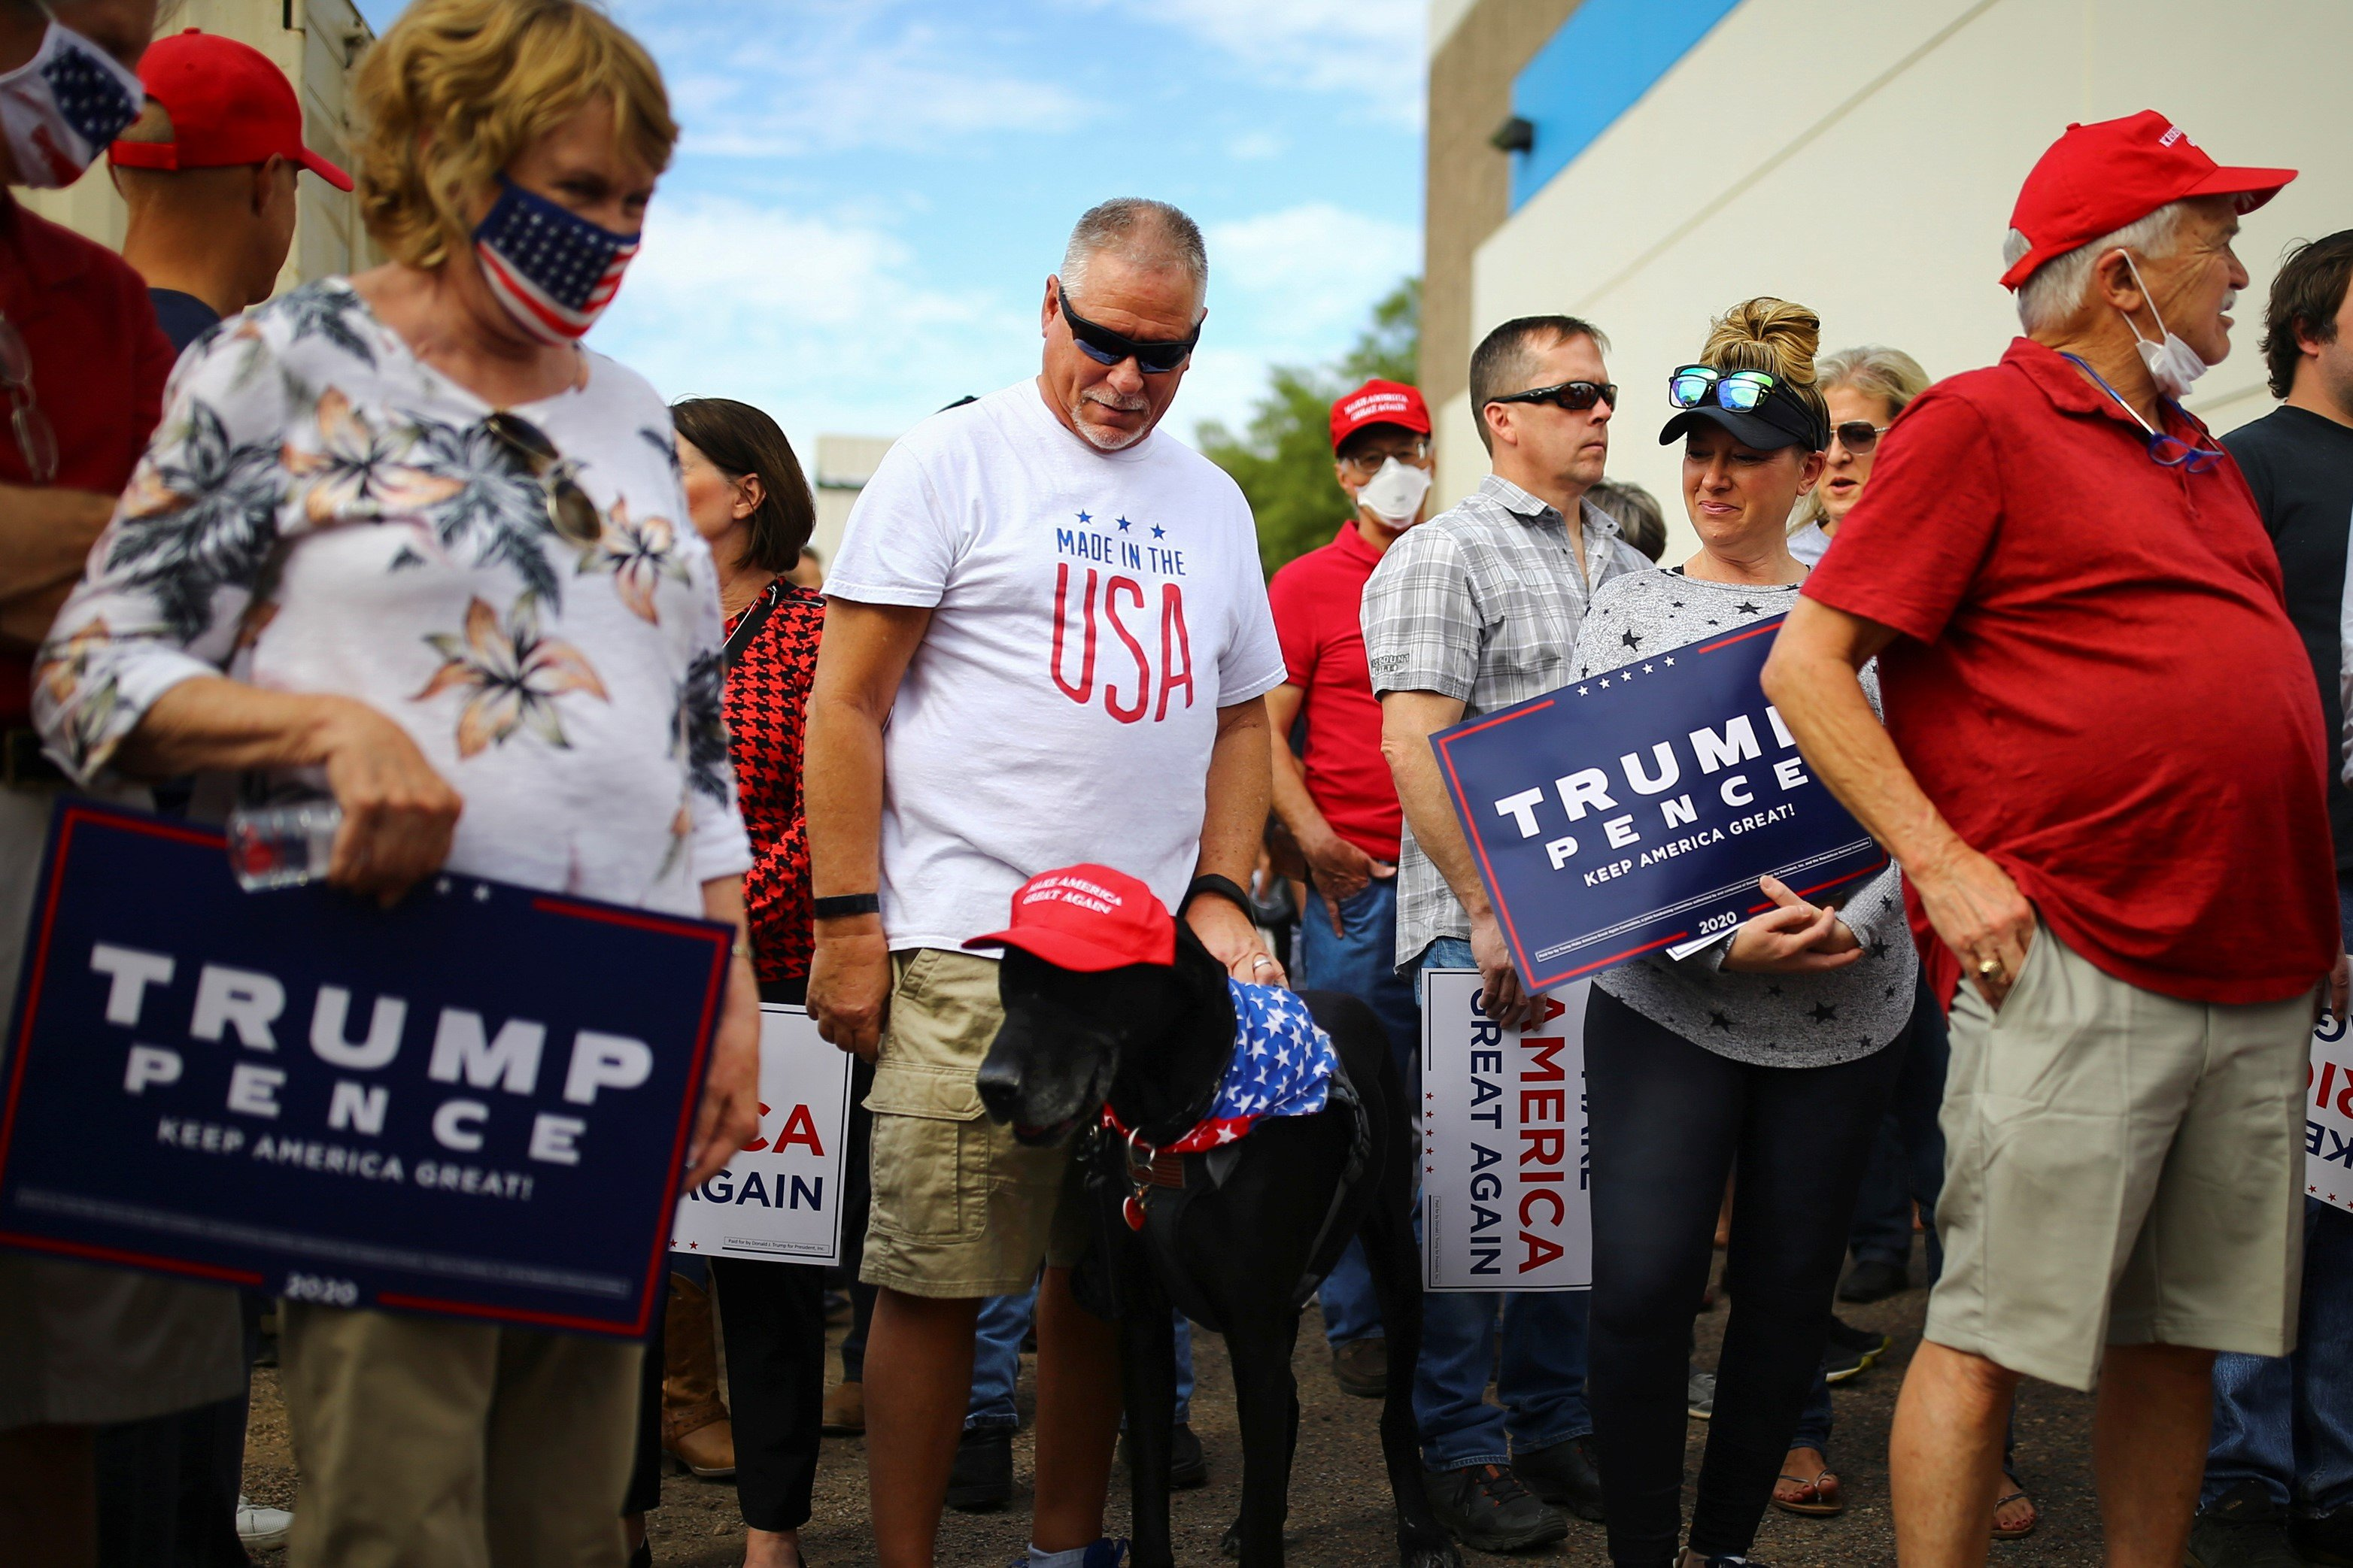 Supporters arrive to take part in a campaign rally from Donald Trump Jr for U.S. President Donald Trump ahead of Election Day in Scottsdale, Arizona, U.S., November 2, 2020